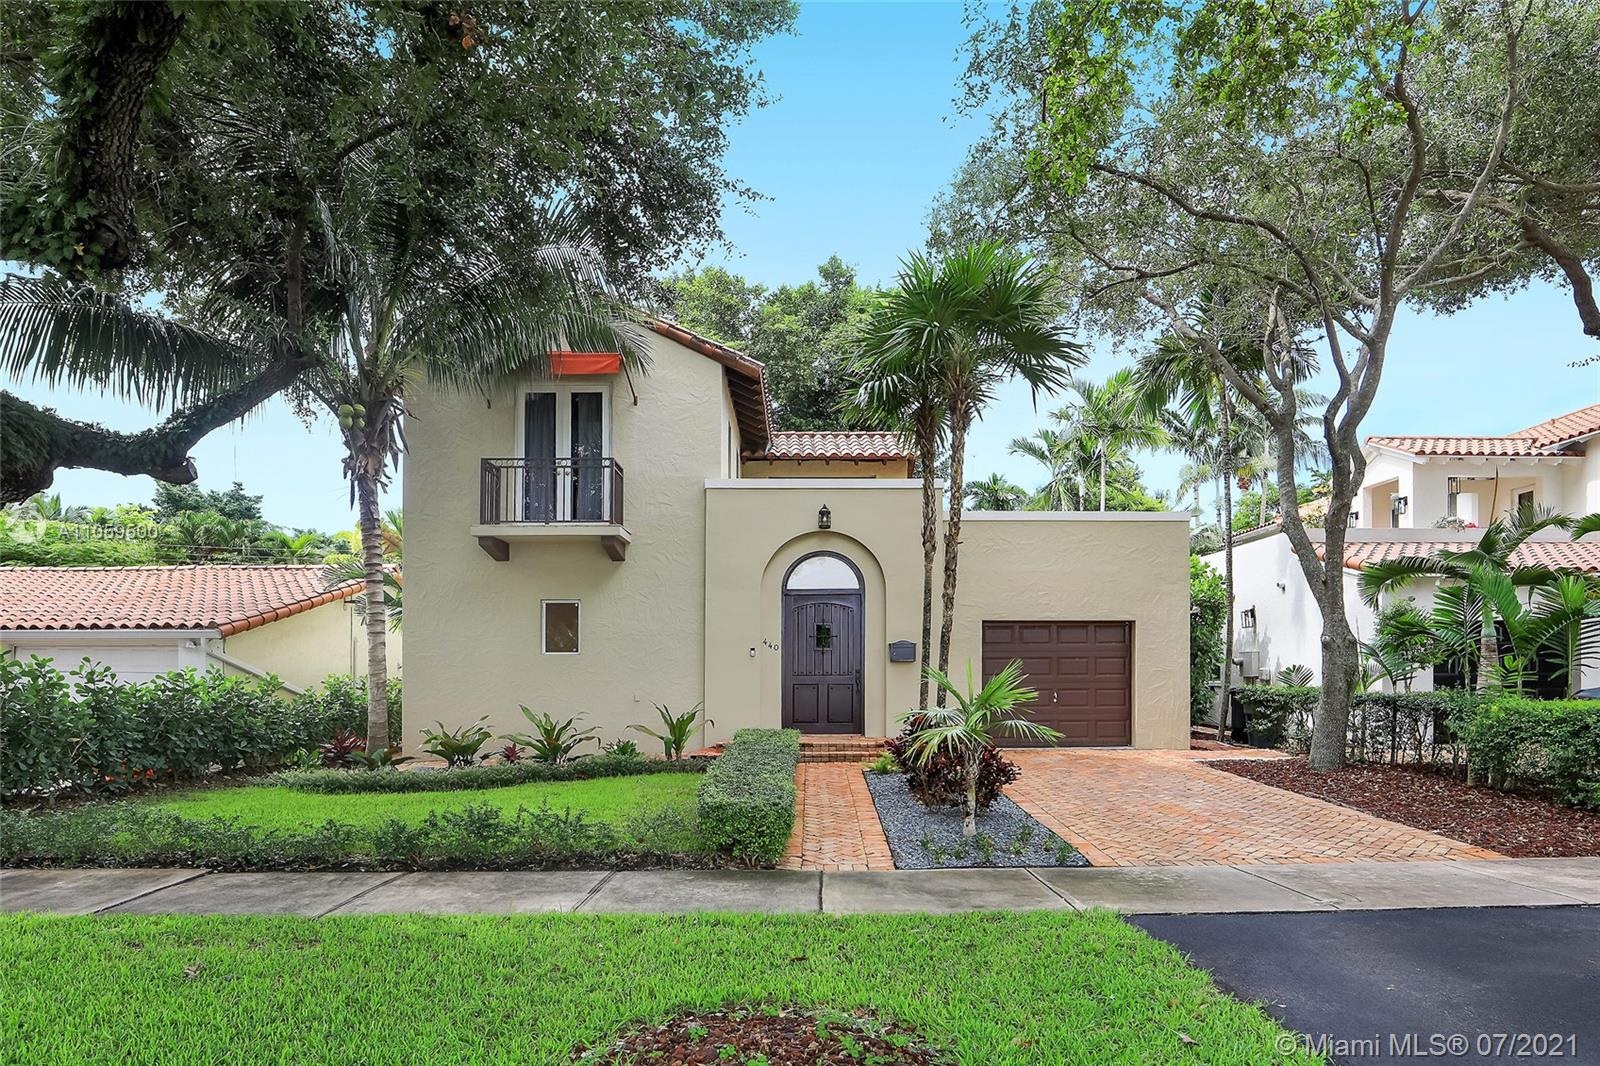 """Lifestyle, location, beauty, and charm, this spectacular Coral Gables home has it all! Open the stunning wooden gate and enter your private courtyard into your new turn key home. The natural light flows freely through this two story home into the new remodeled kitchen which is stunning and done tastefully. The living room boasts beautiful built-ins for storage and electronic equipment. The master suite includes a spacious closet and gorgeous bath with spa tub and separate shower. Enjoy the amazing courtyard and upstairs terrace for relaxation and entertaining family and guests. This home is surrounded by lush tropical landscaping covering the entire property, including the one car garage. Come live in one of the most sought after neighborhoods in Miami, Coral Gables """"The City Beautiful""""."""